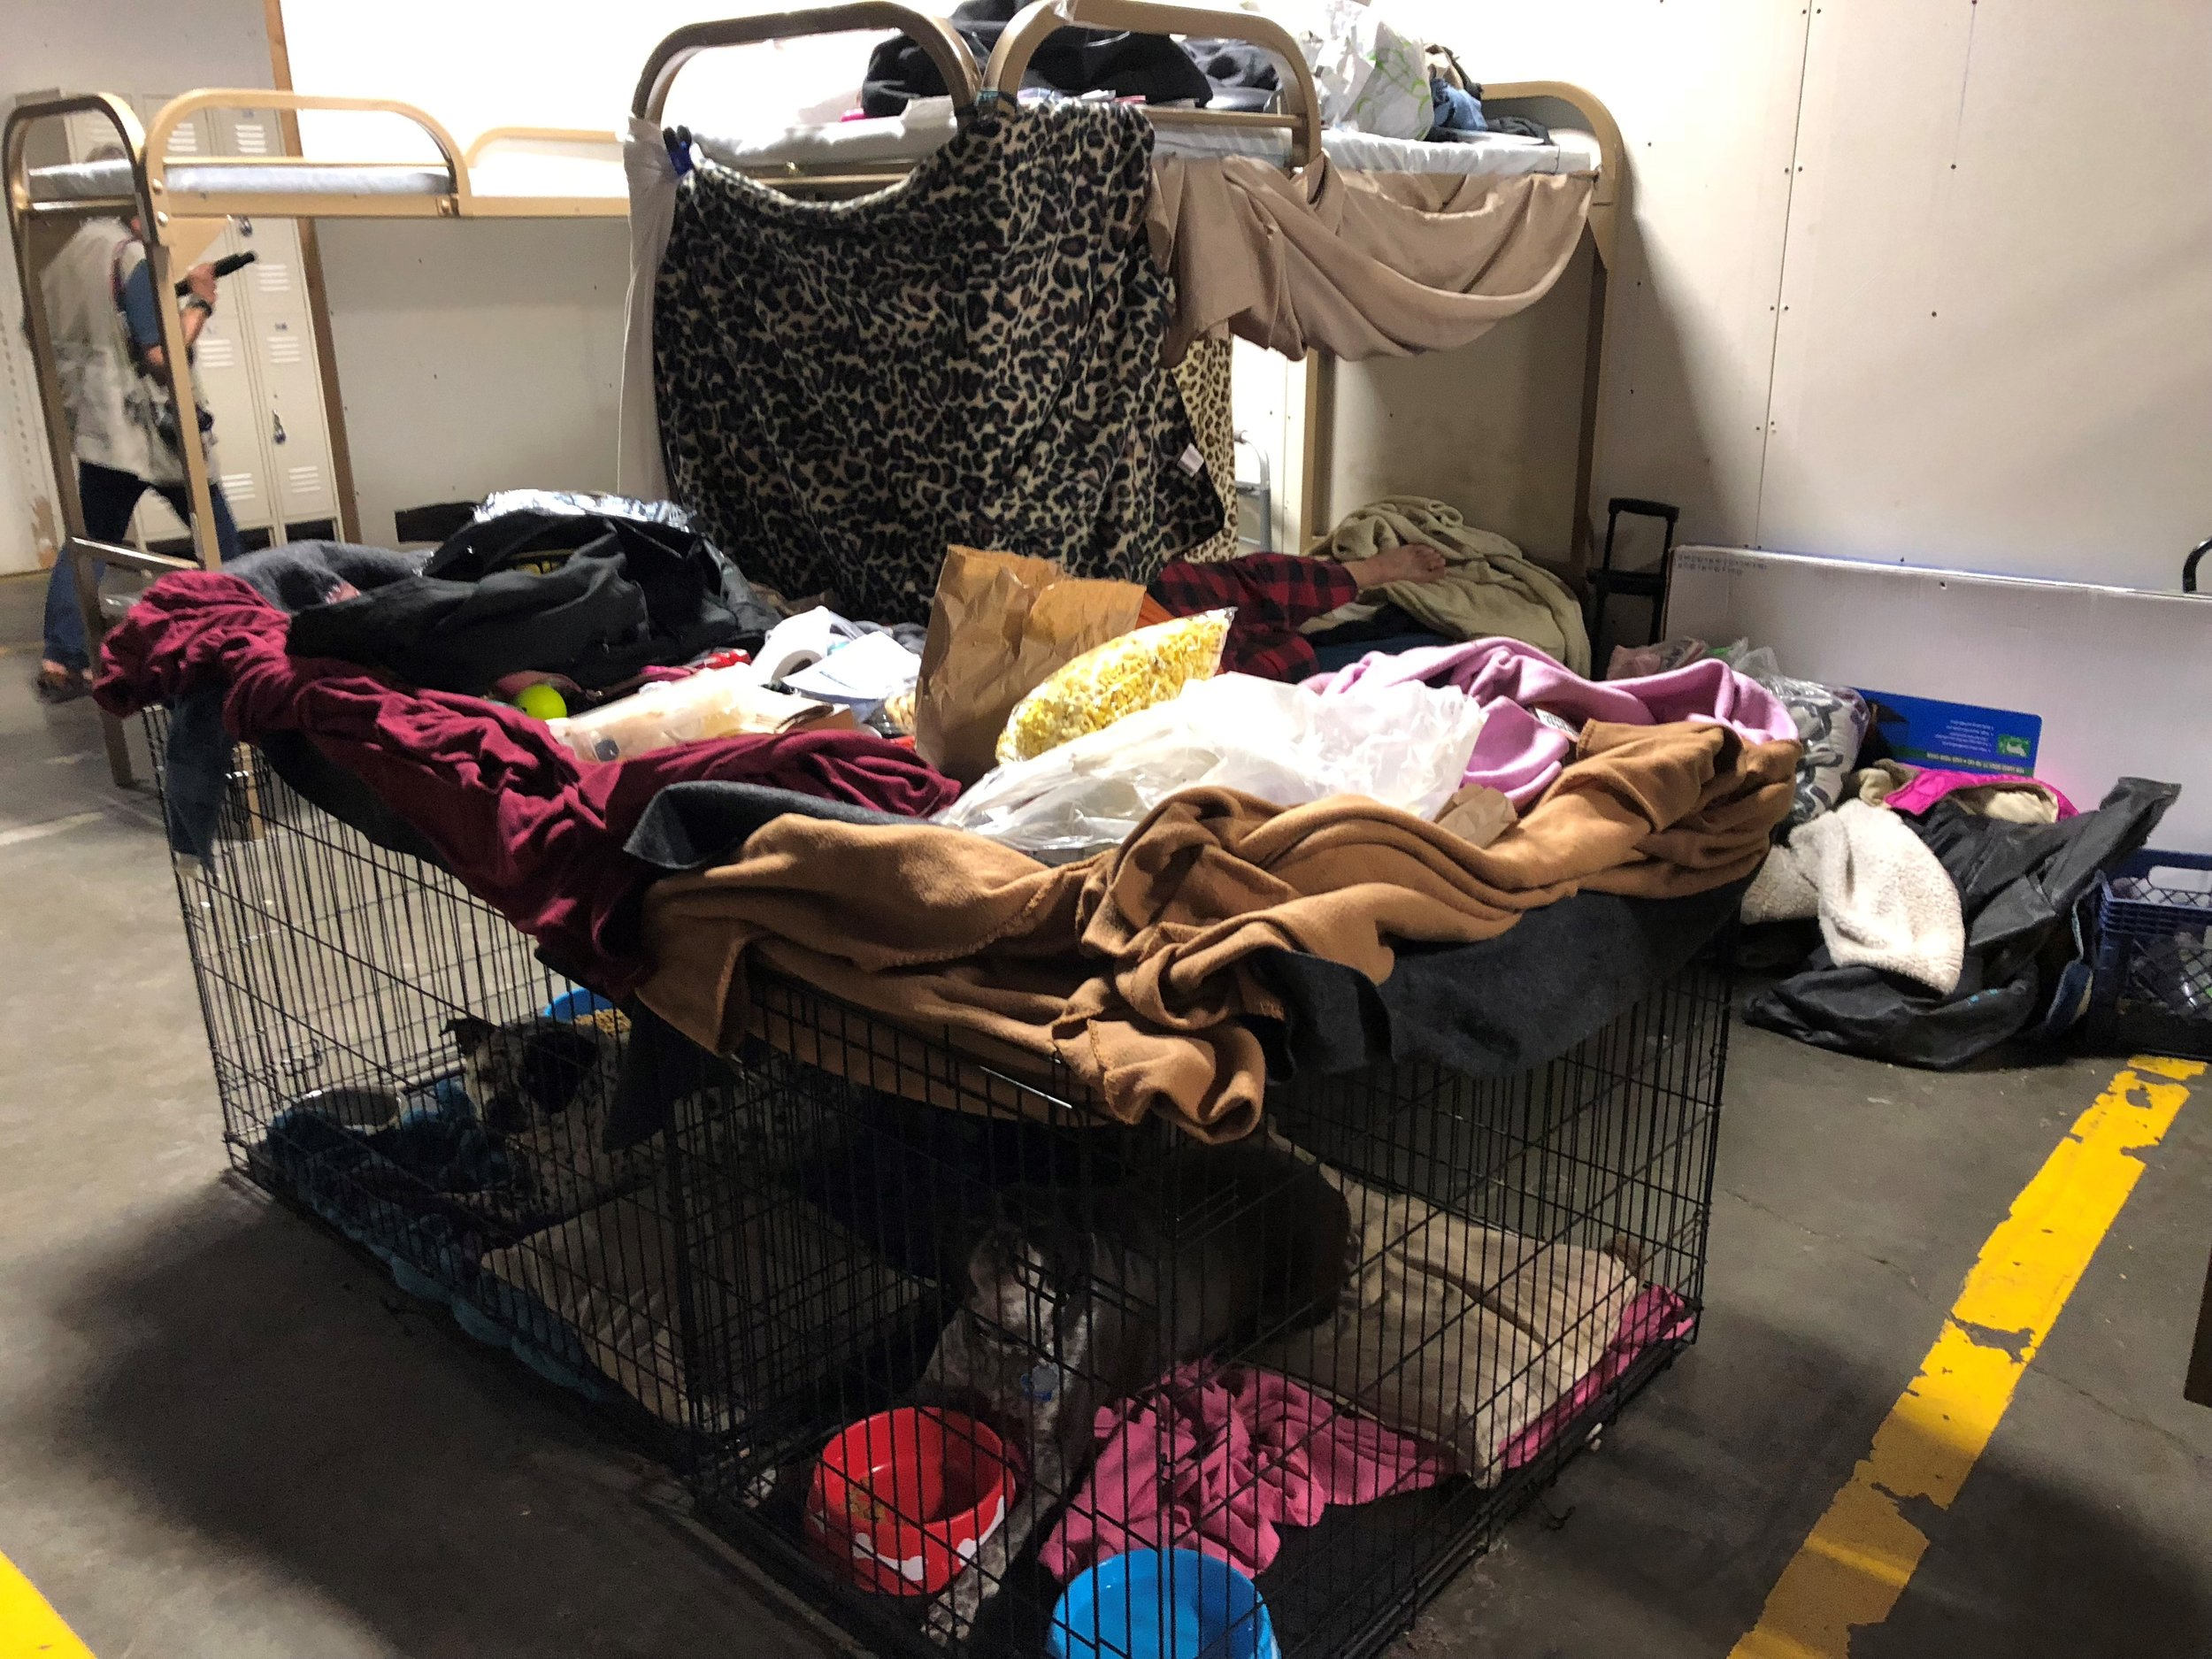 Residents have used blankets to create privacy in their bunks. One thing that sets the Triage Center apart from other shelters is that it accepts pets.